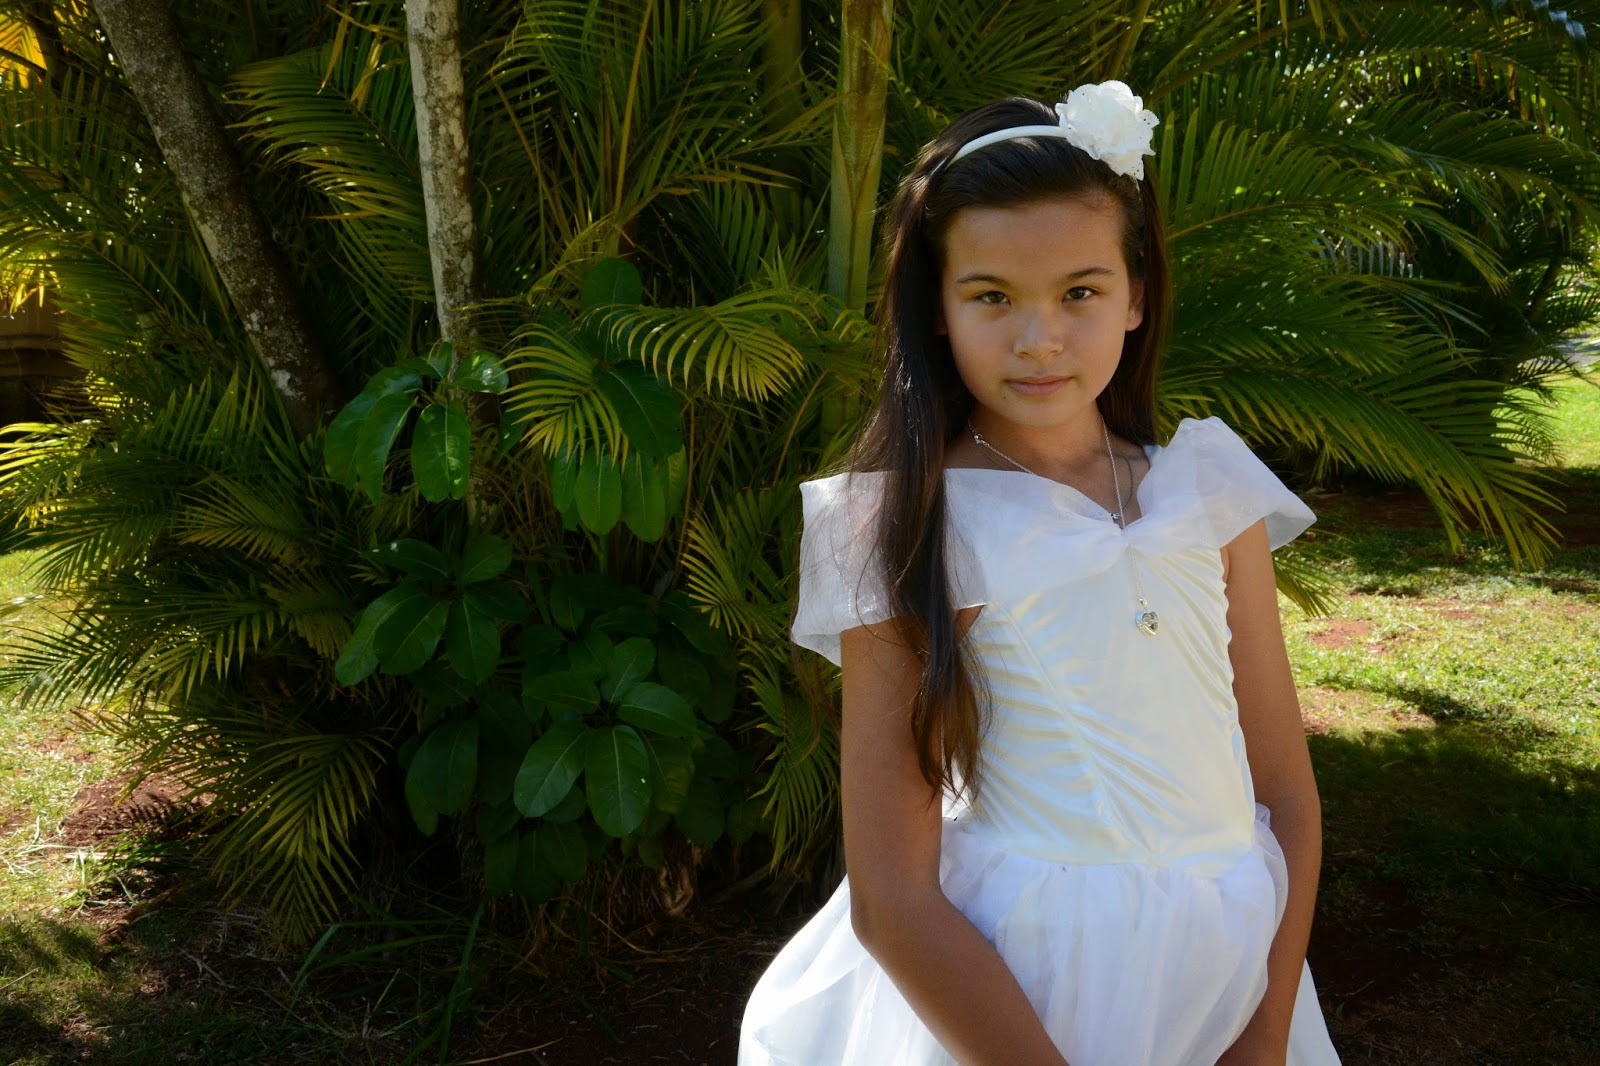 Little girl in white princess party dress